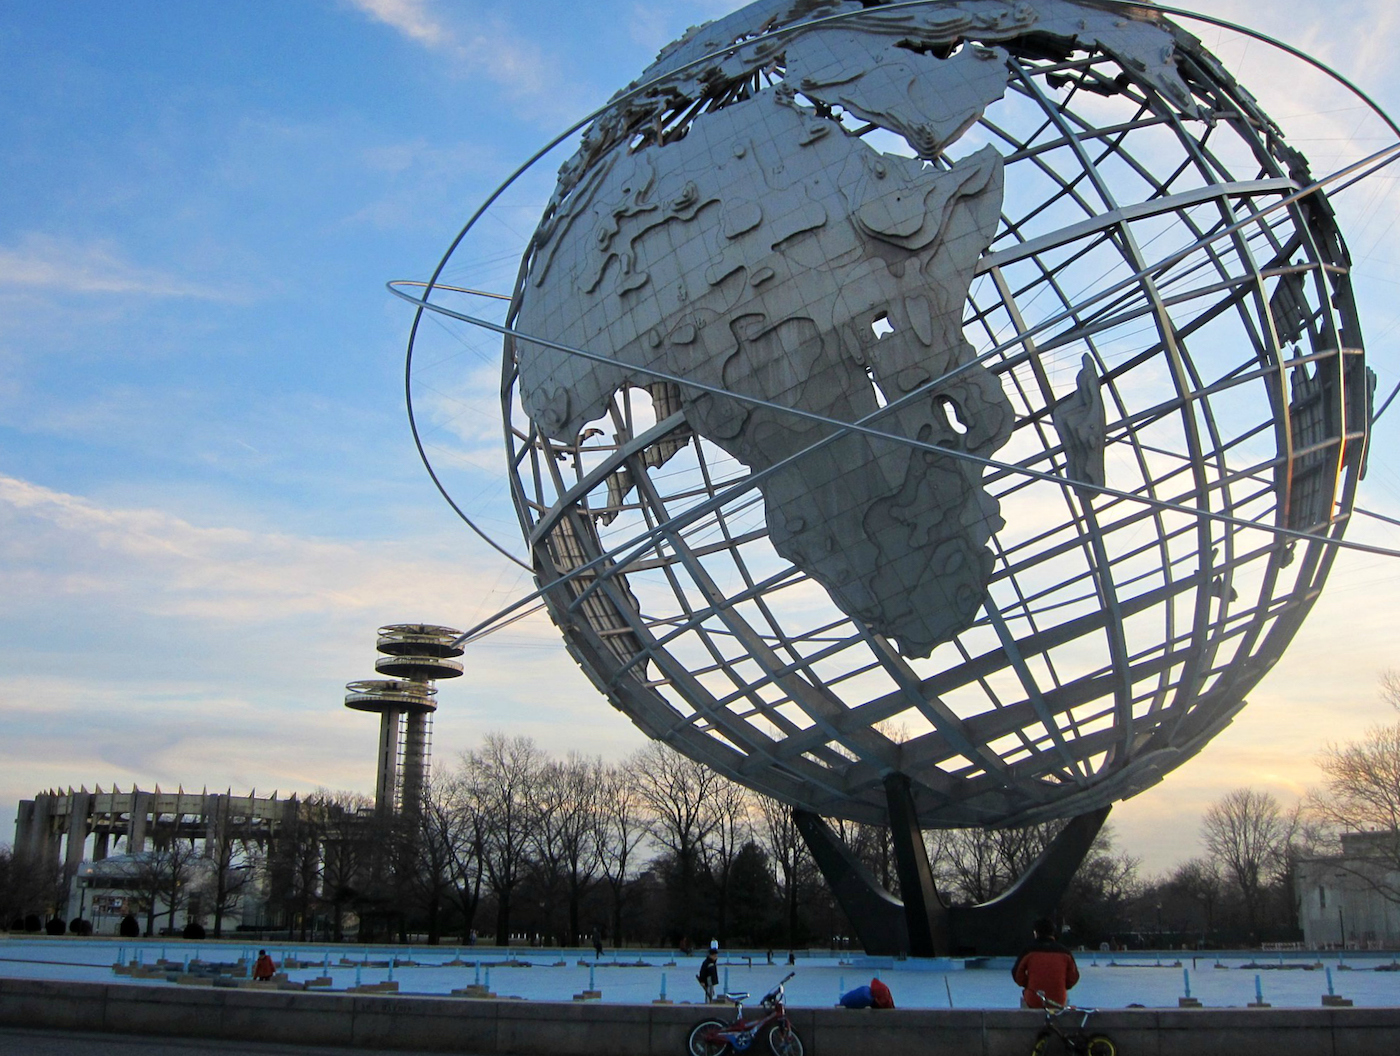 The New York State Pavilion and the Unisphere in Flushing Meadows–Corona Park